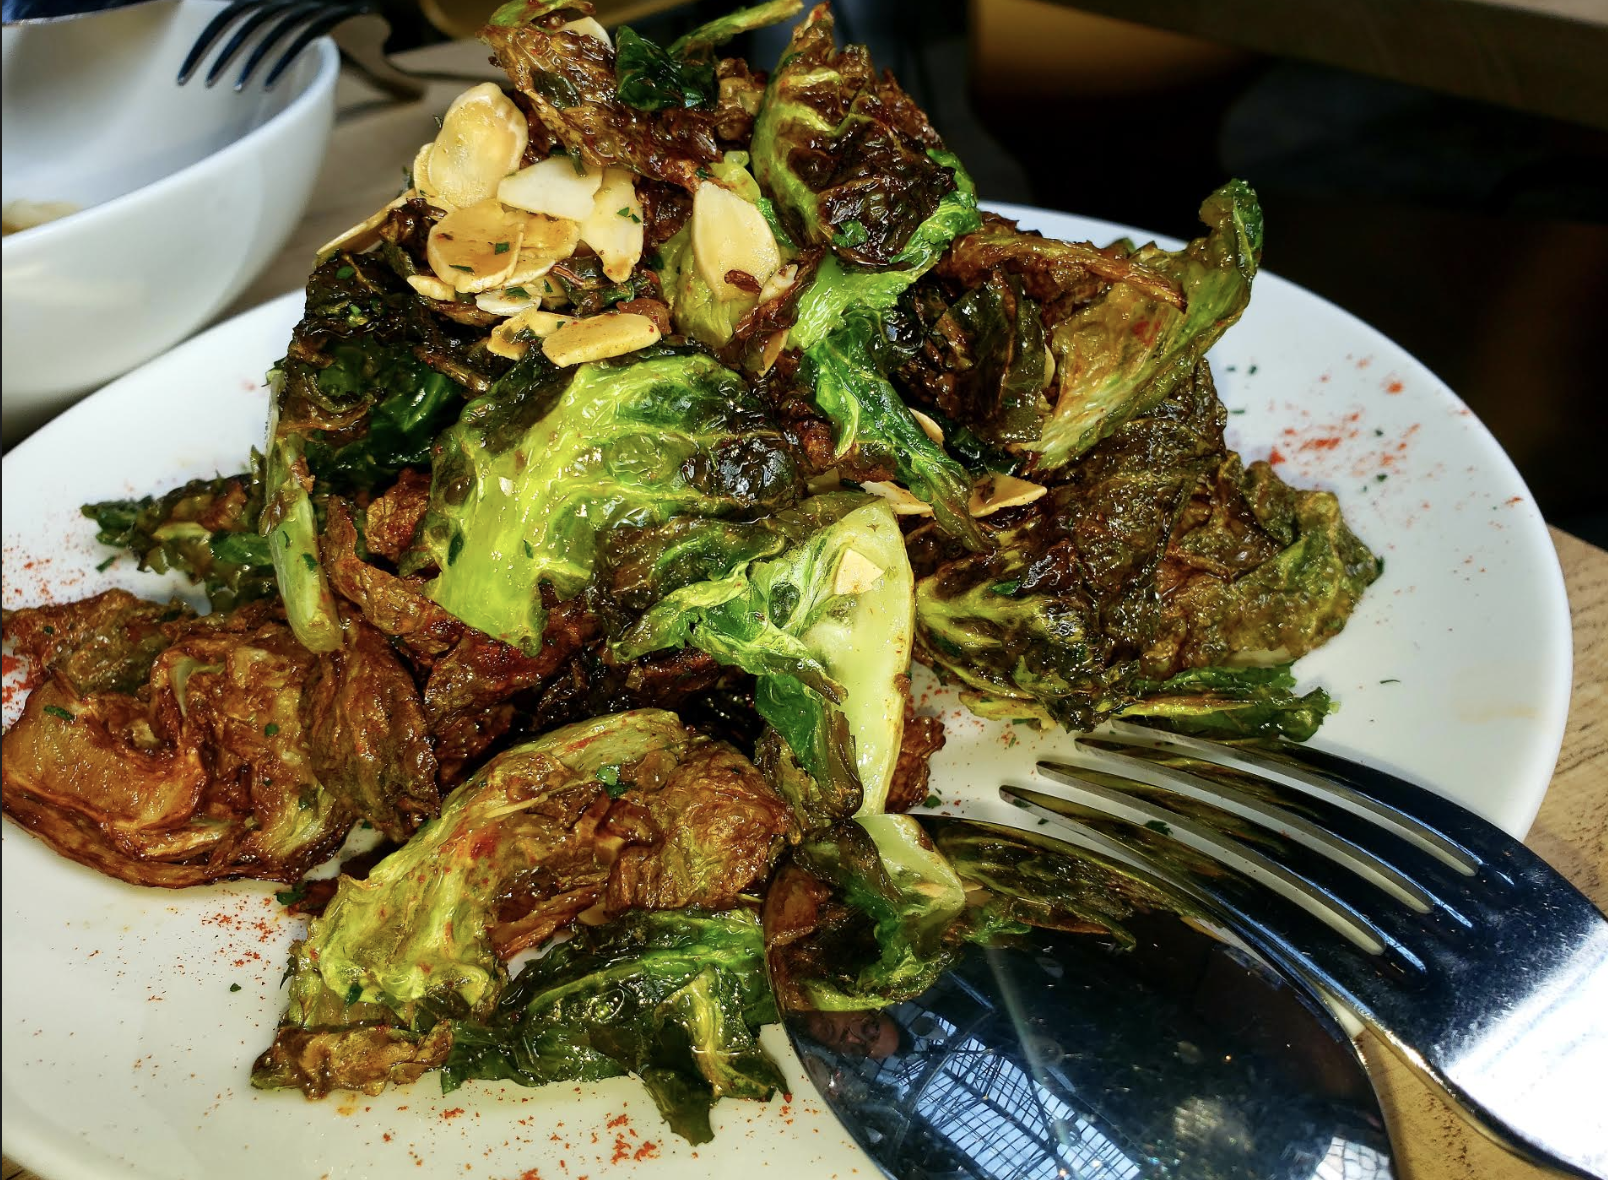 The Brussel Sprouts are a MUST!